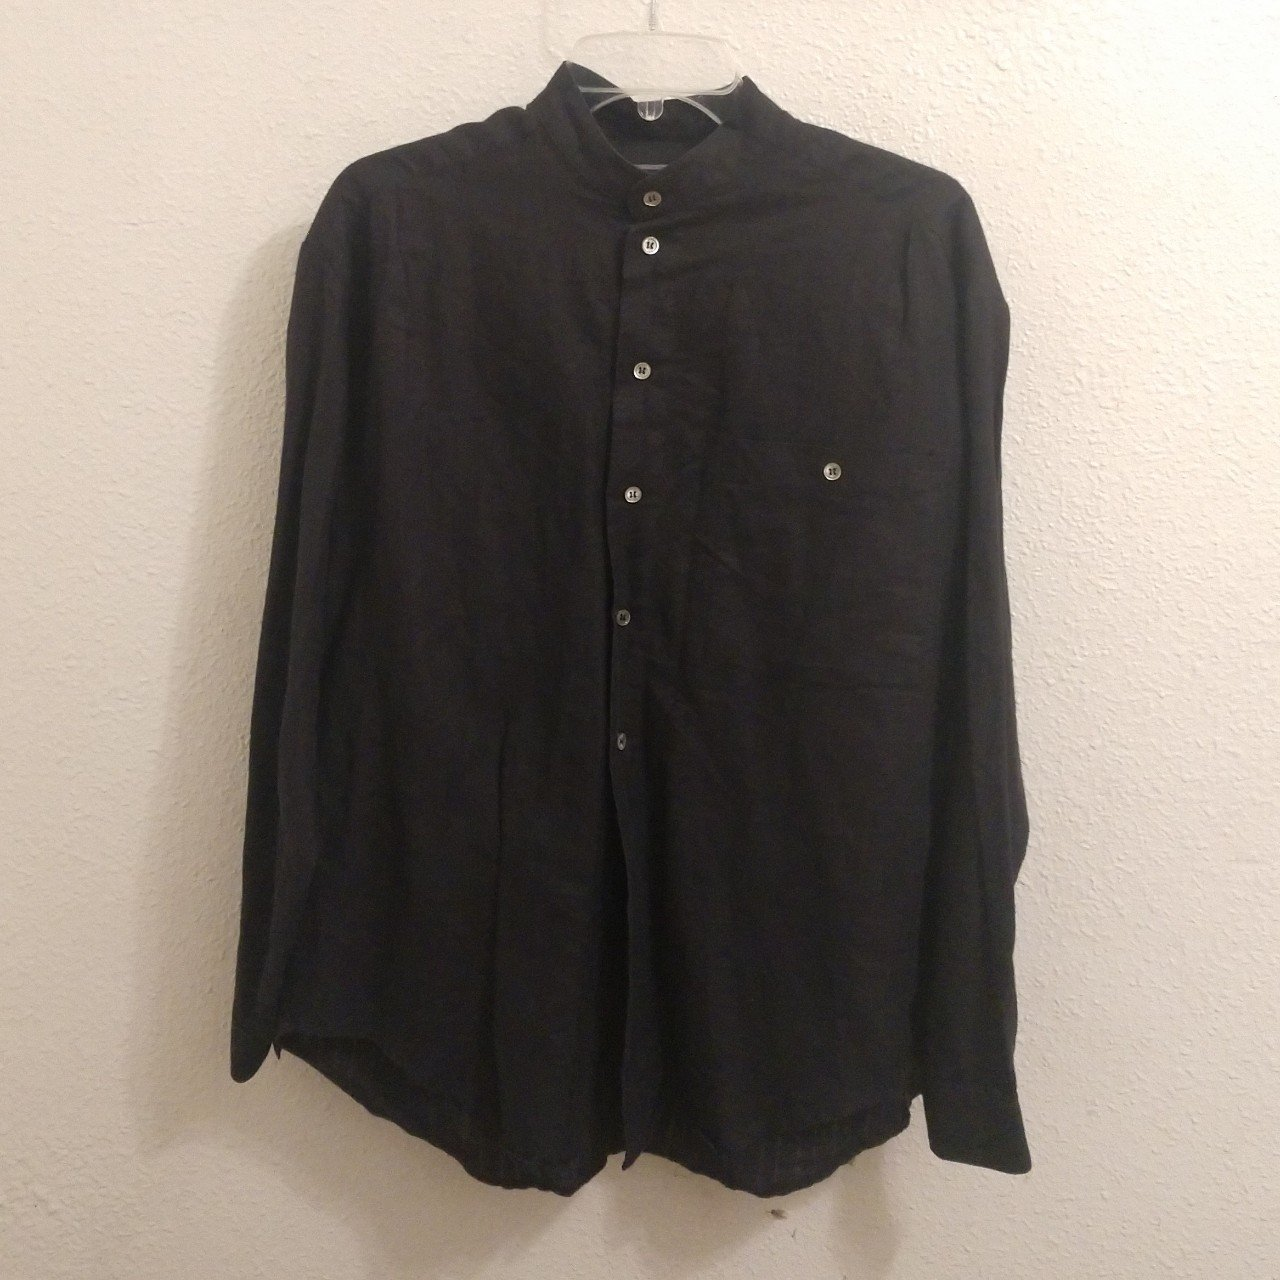 a9a8a2ca3a707 Like New! Men's Button-down